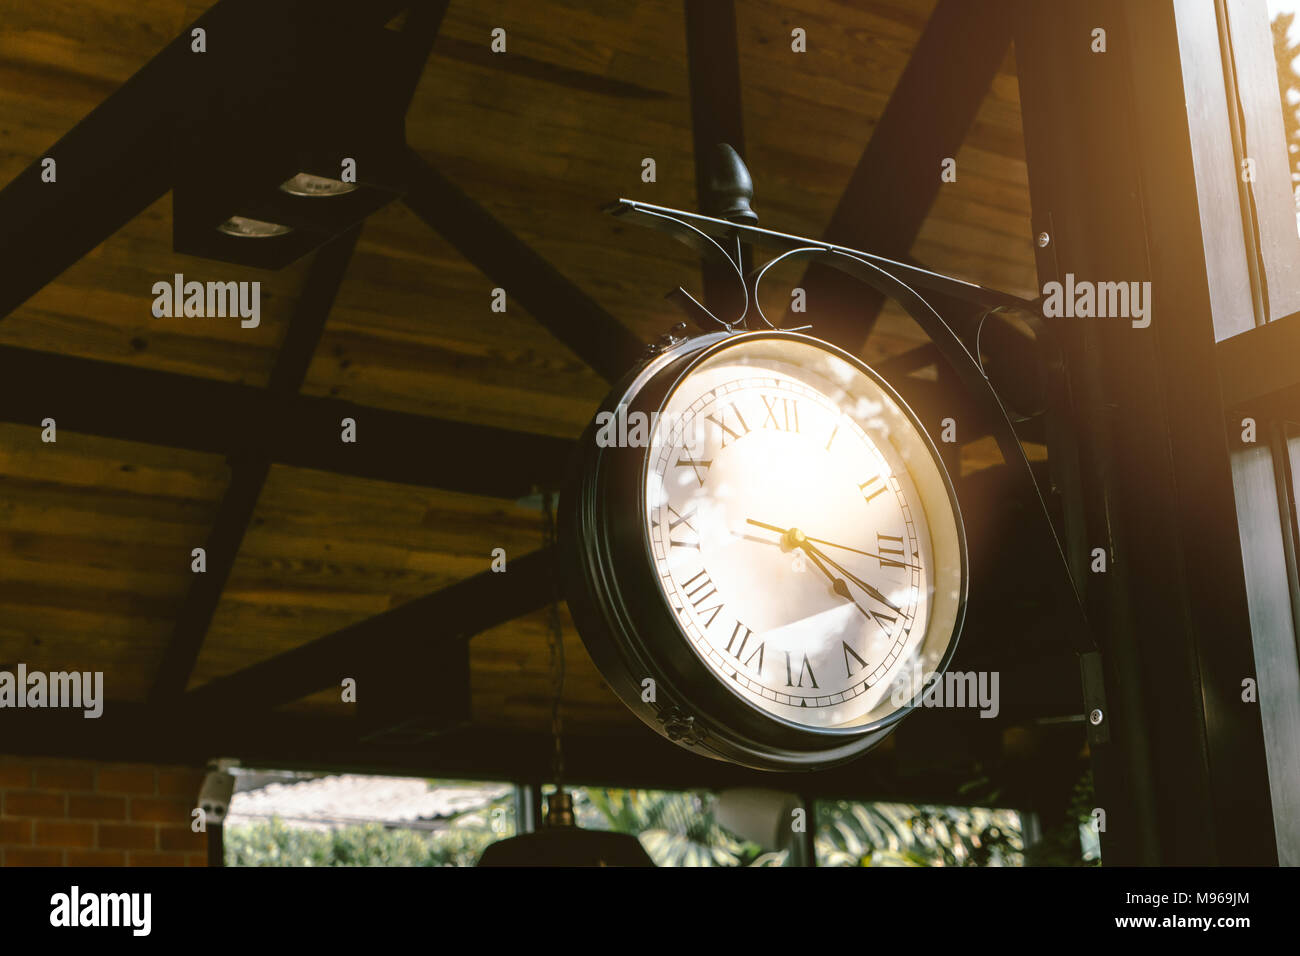 Vintage Hanging Clock Antike Dekoration Cafe Innen Stockfoto Bild